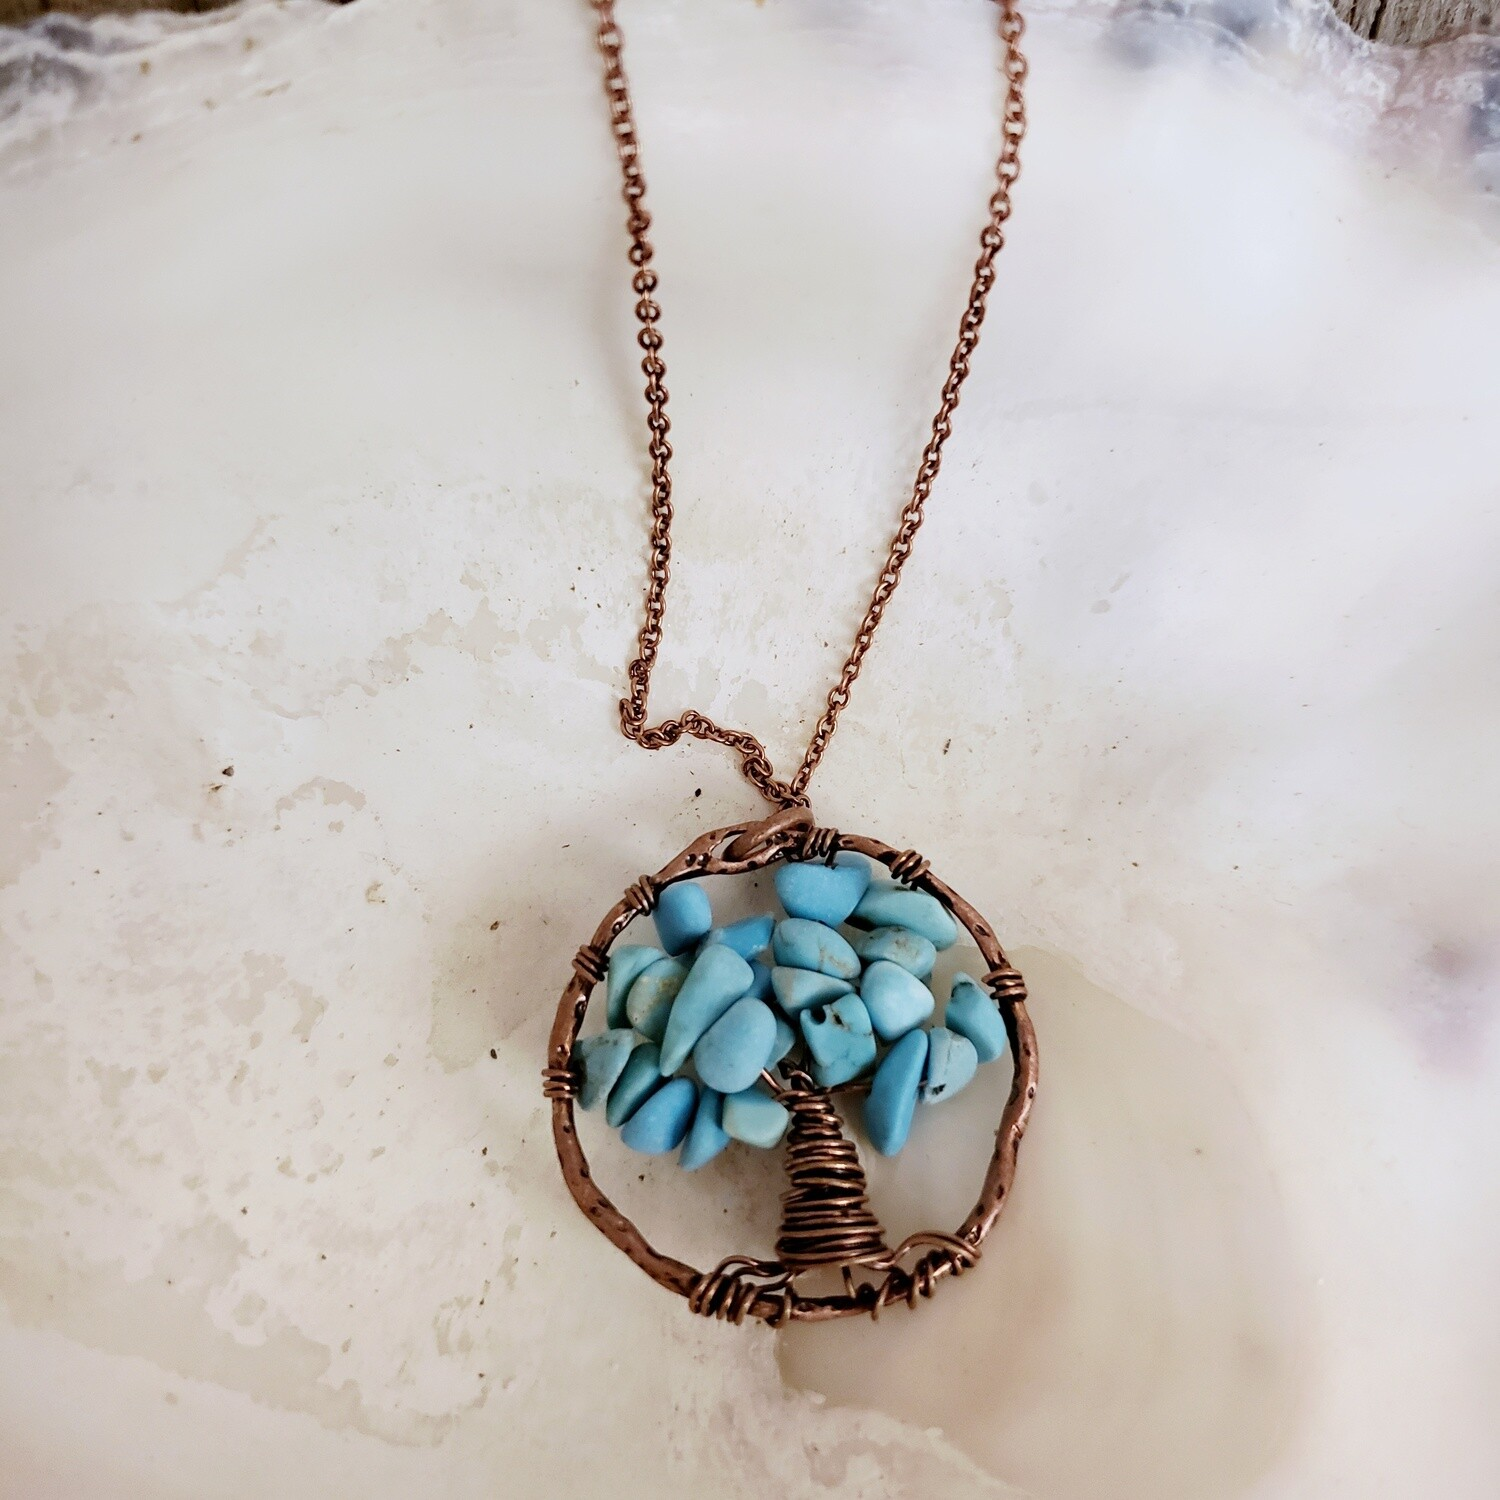 Wild Abandon Small Necklace - Copper Turquoise Bead Tree